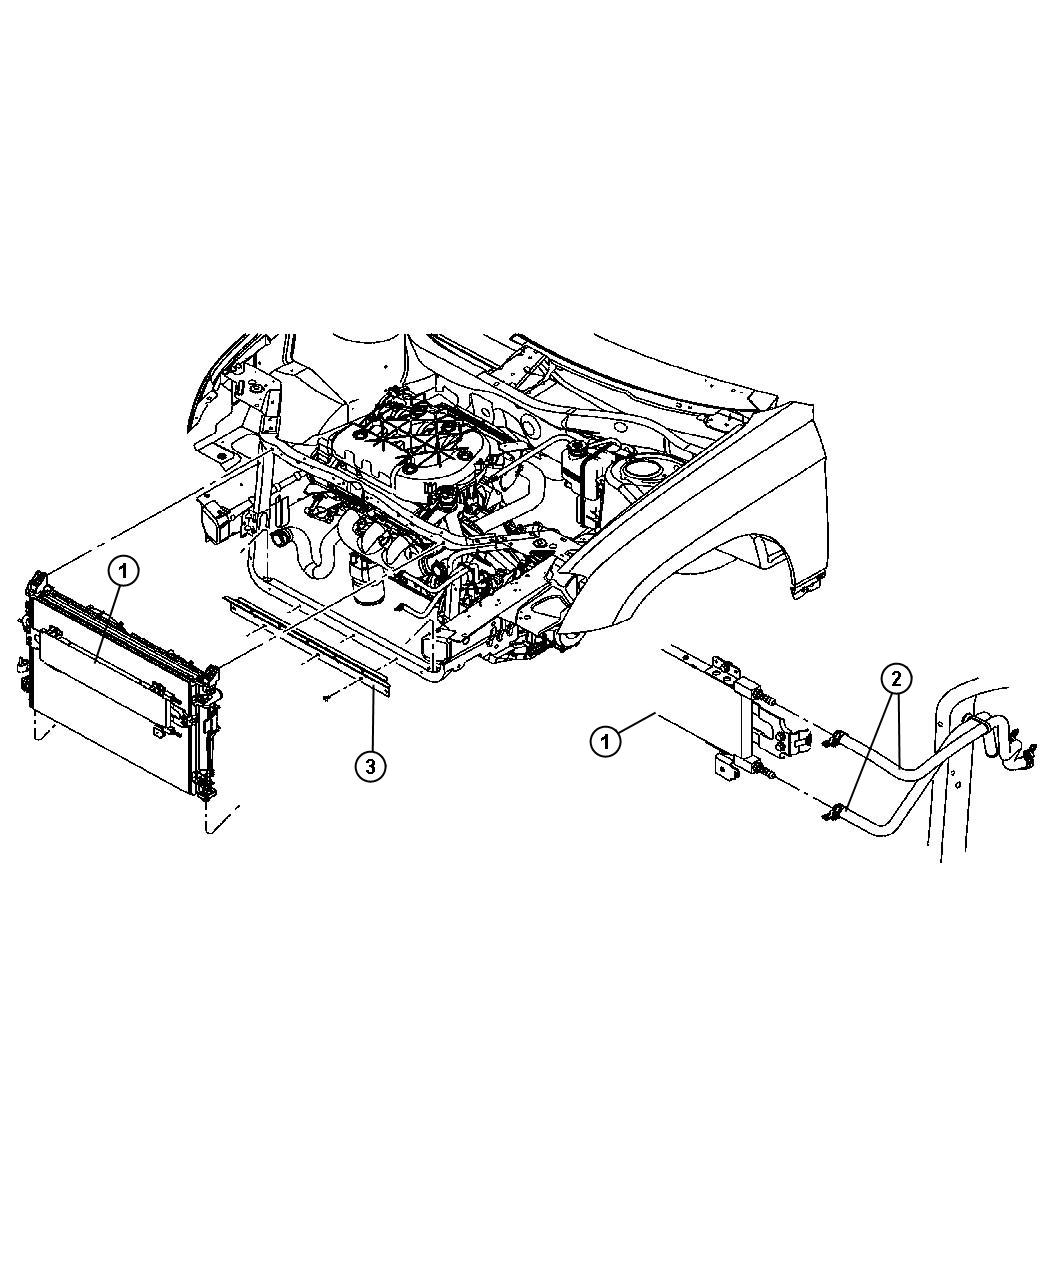 Toyota Tacoma Air Conditioning System